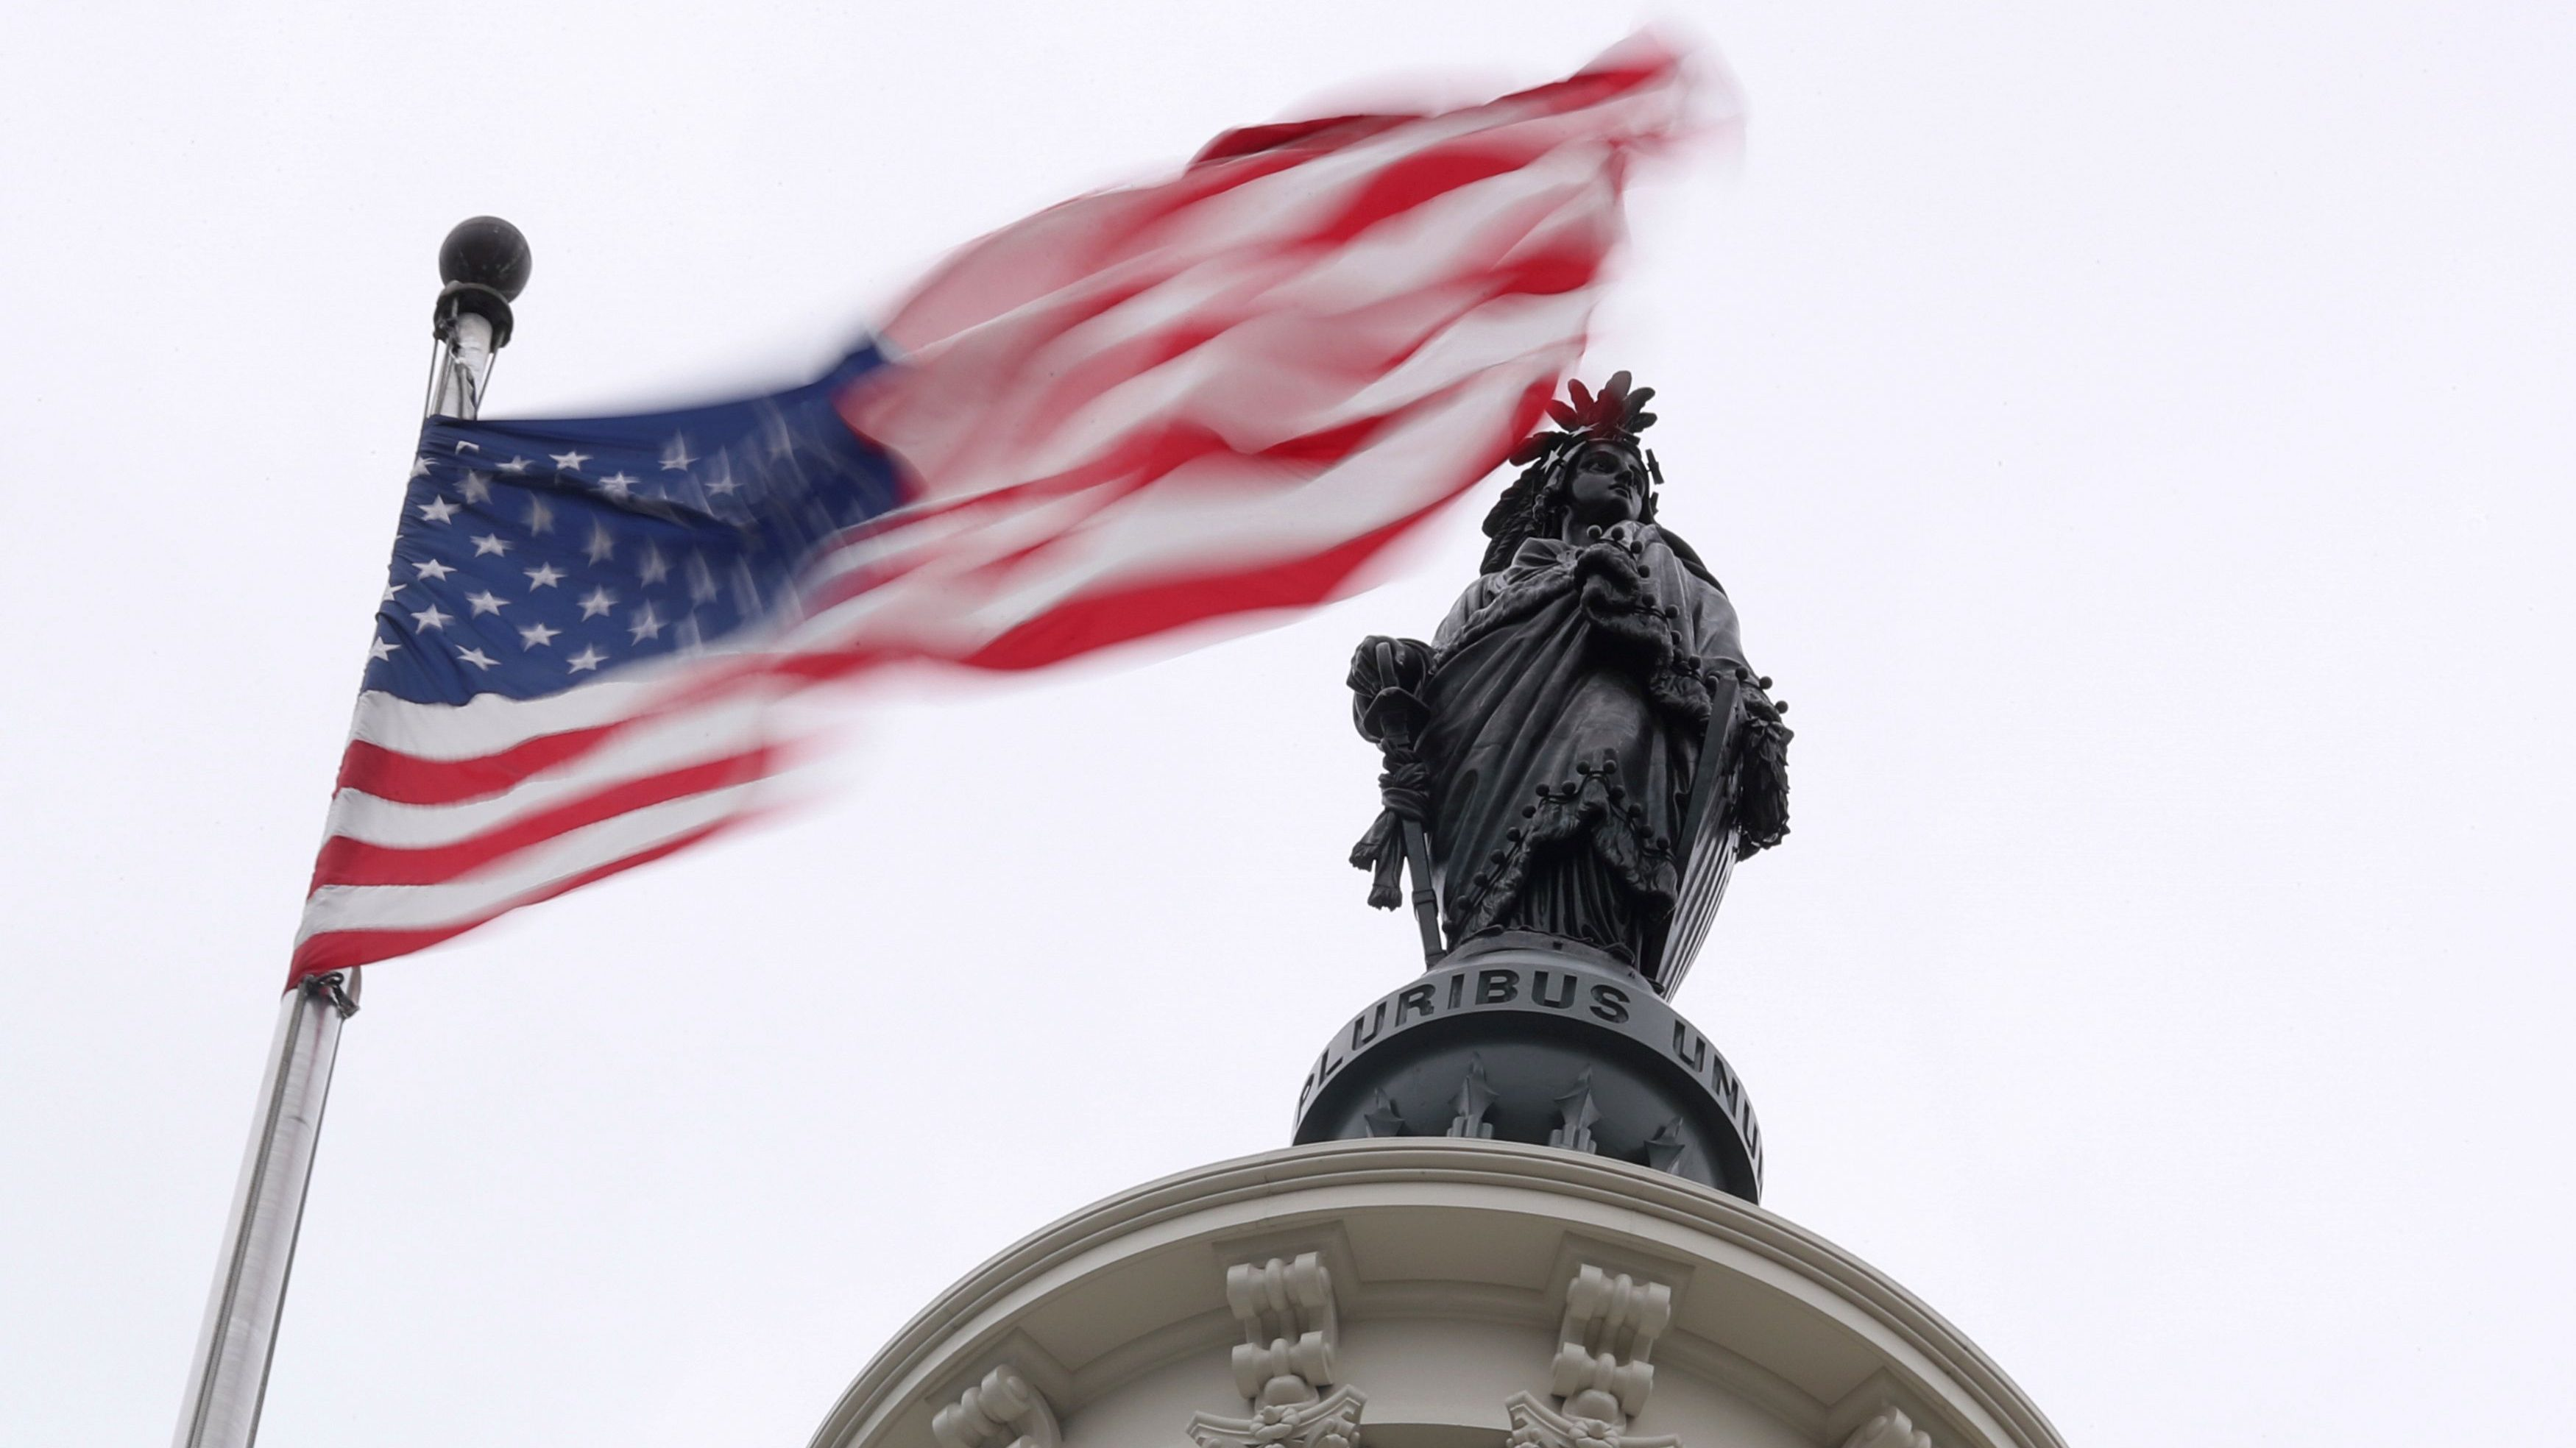 The U.S. flag flies near the Statue of Freedom atop the U.S. Capitol in Washington